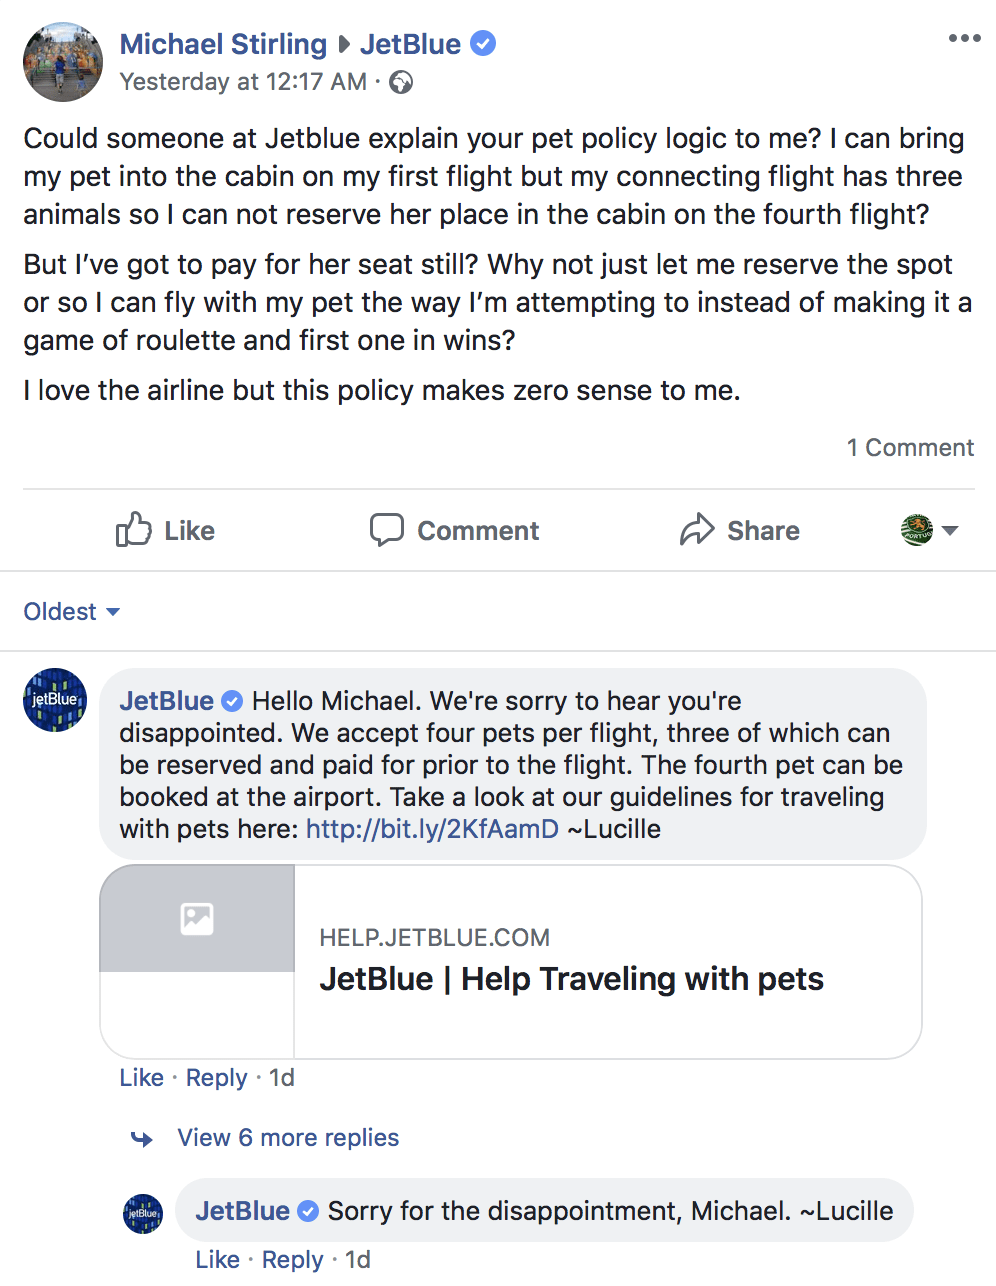 Conversation on JetBlue's Facebook page